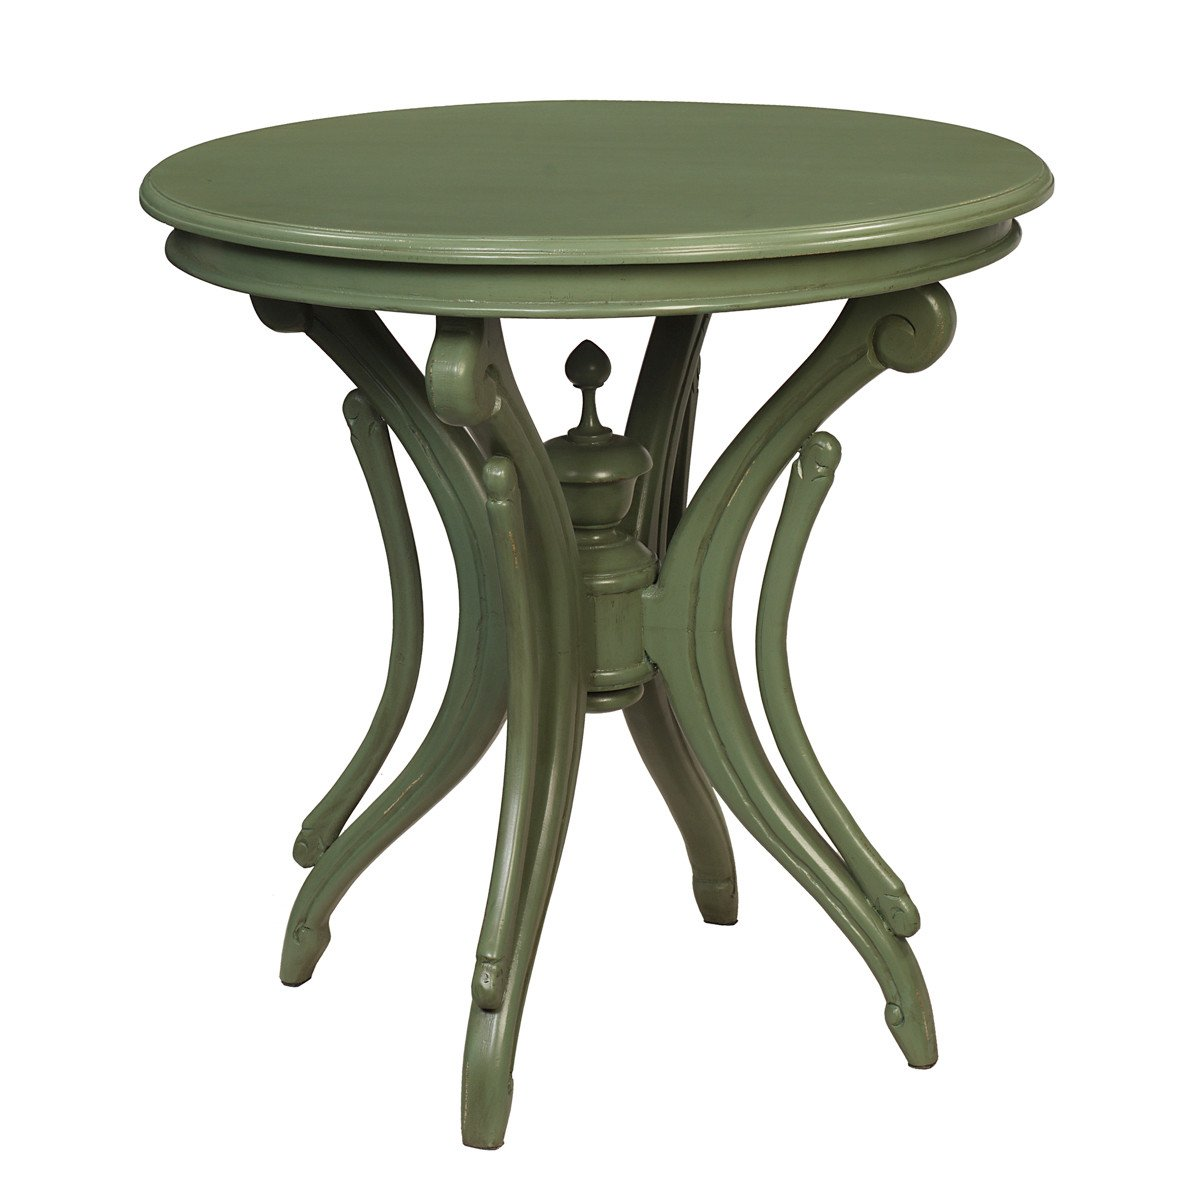 clove round accent table green bay wrightwood furniture cengkeh metal rustic gray coffee ethan allen windsor chairs grill cover inch high end cherry wood dining room patio cooler